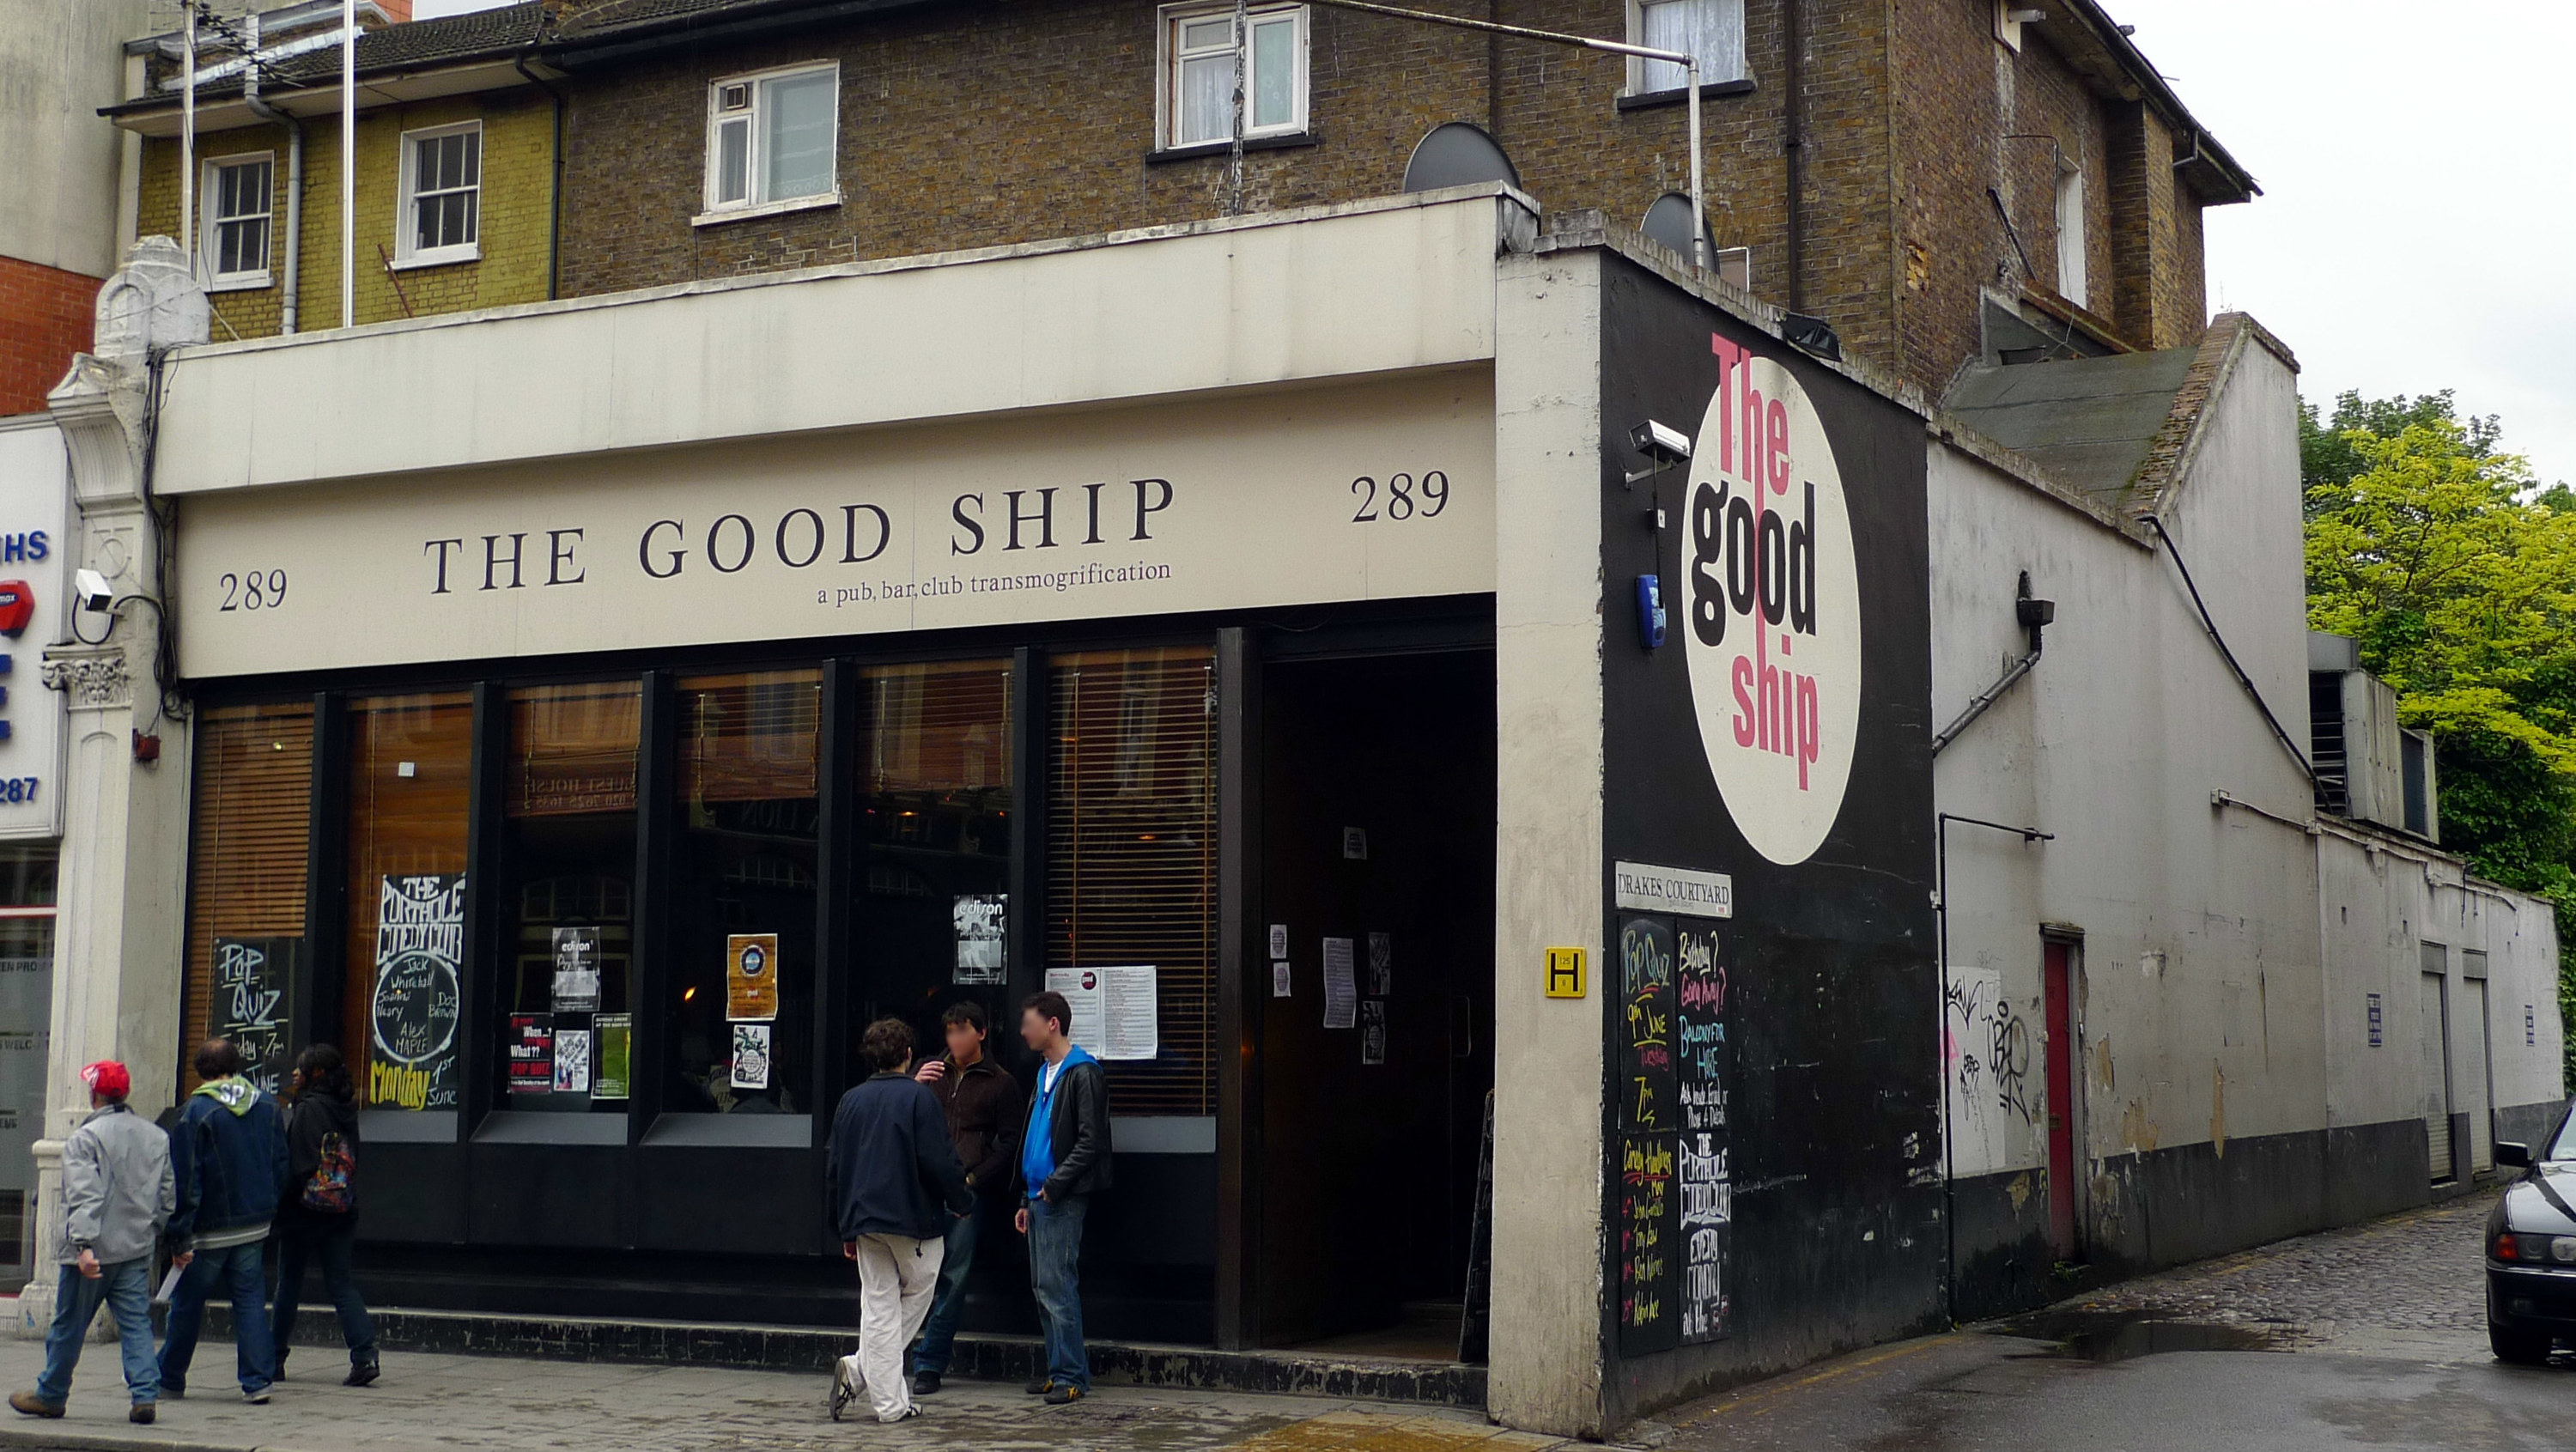 The Good Ship, Kilburn